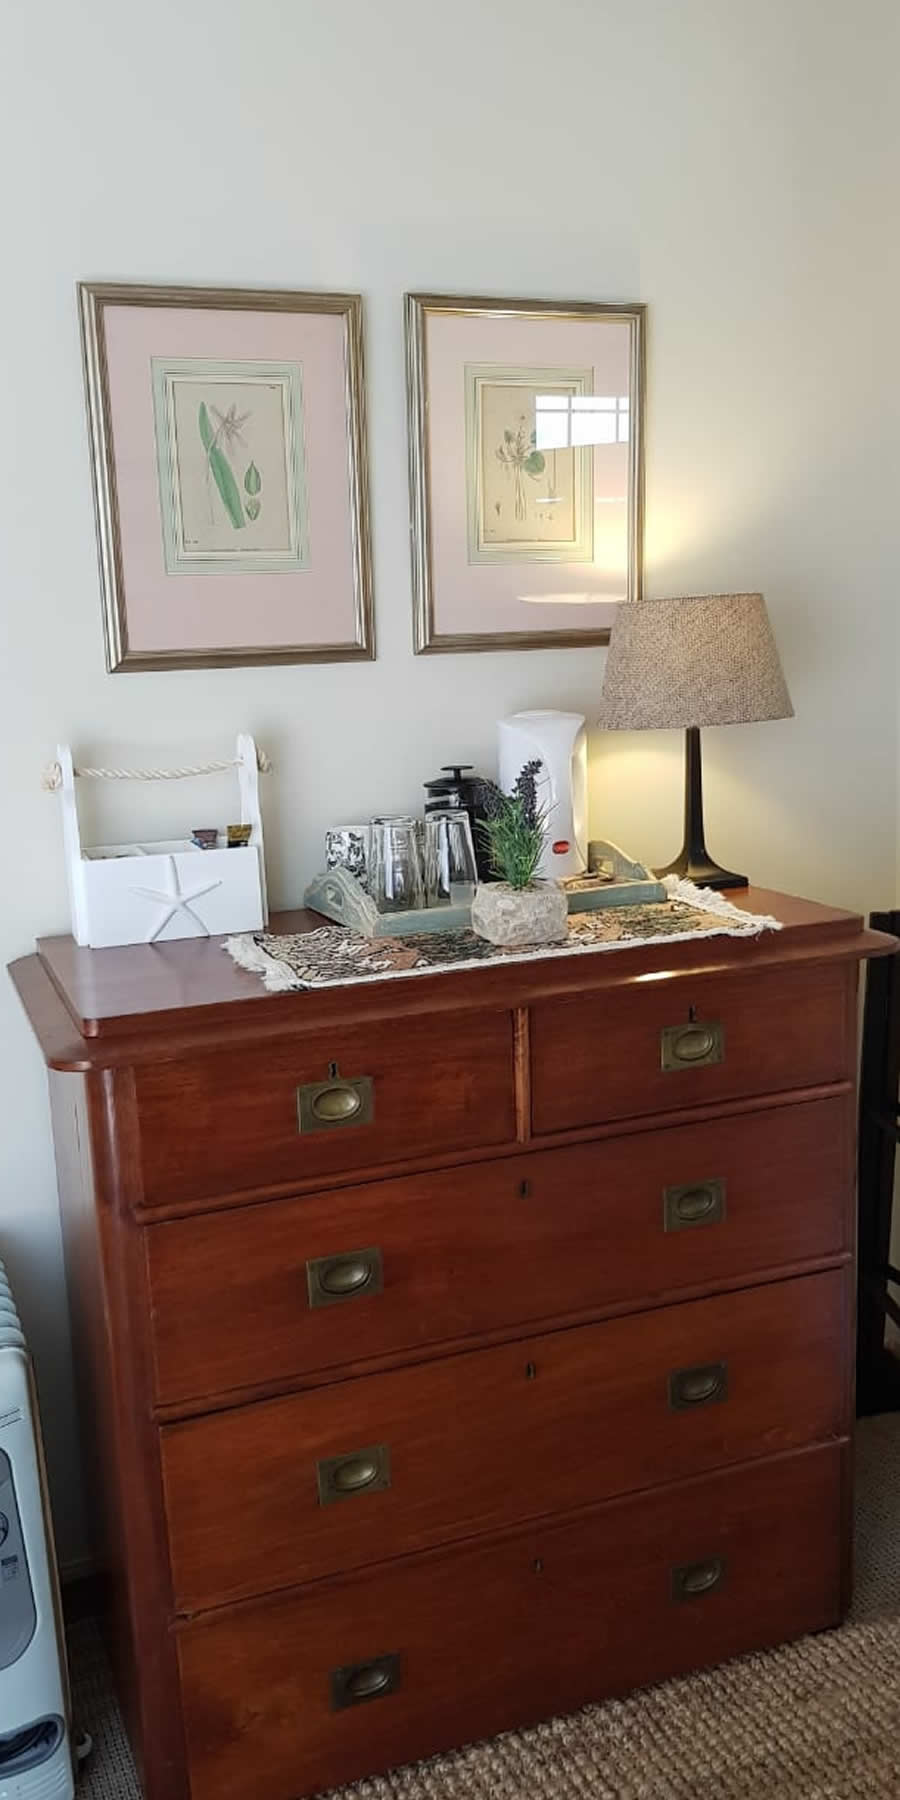 Antique Room drawers